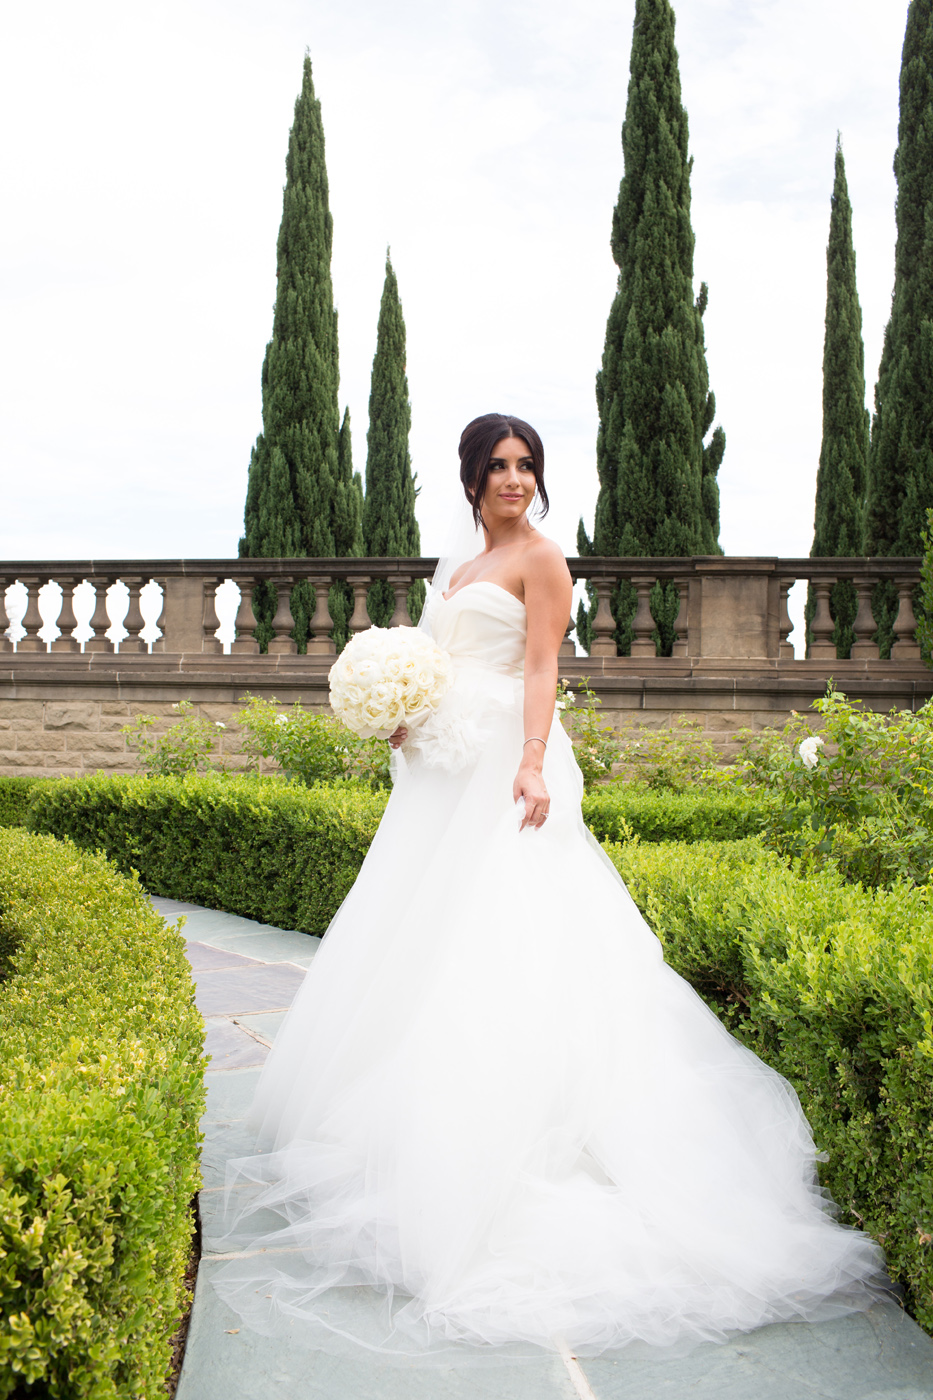 018DukePhotography_DukeImages_weddings_losangeles.jpg